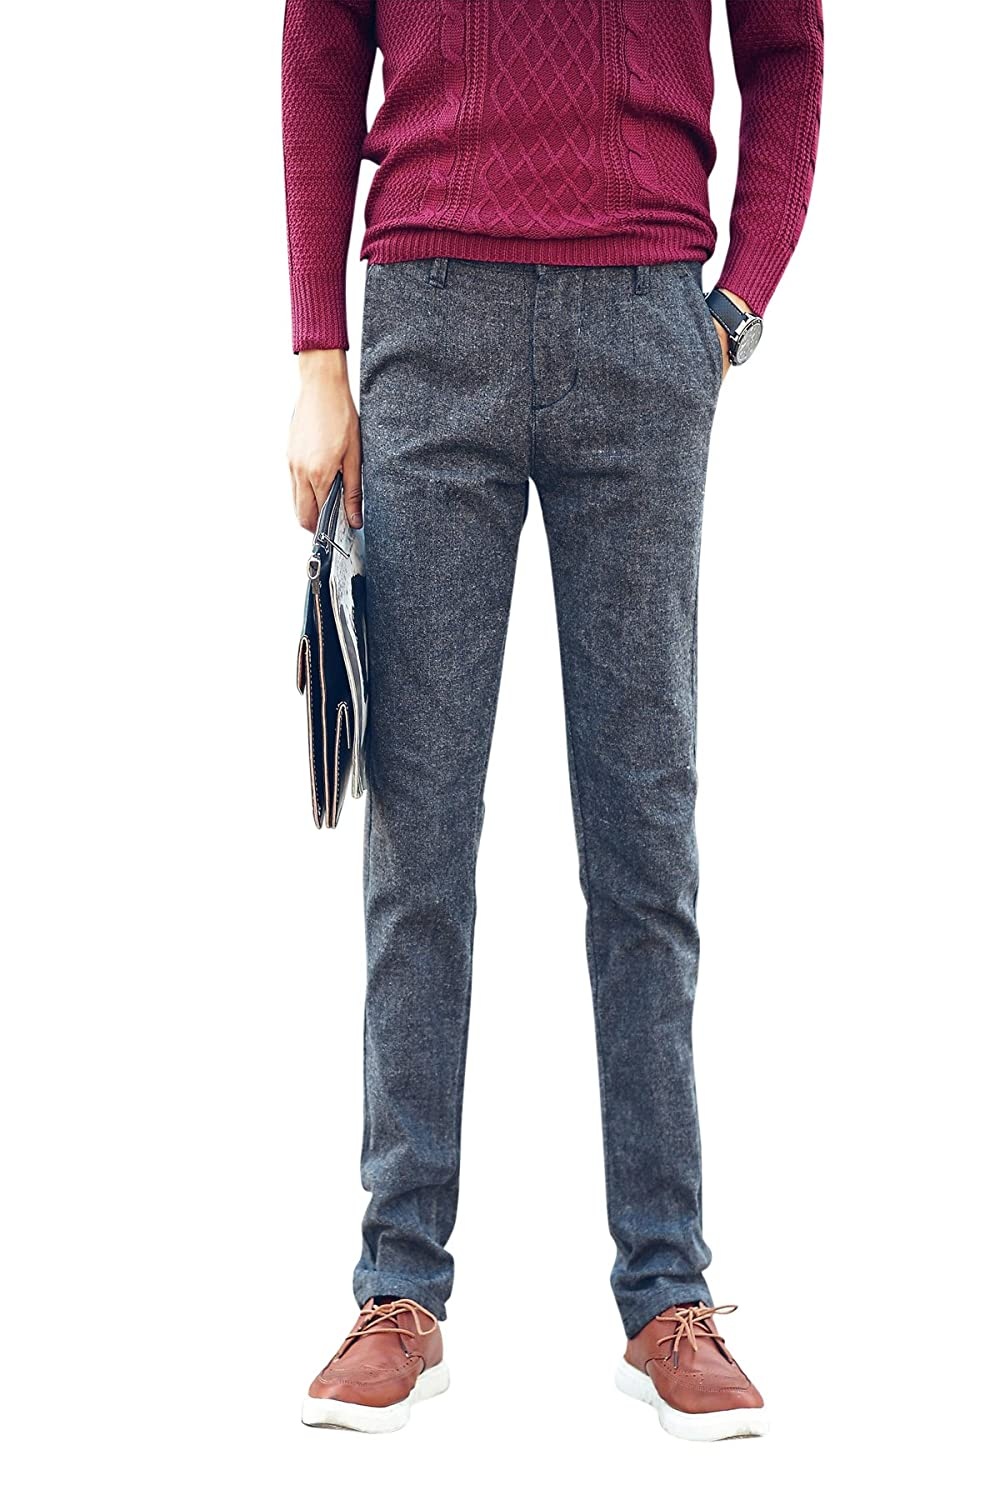 Menschwear Men's Stretch Casual Trousers Casual Straight Legs